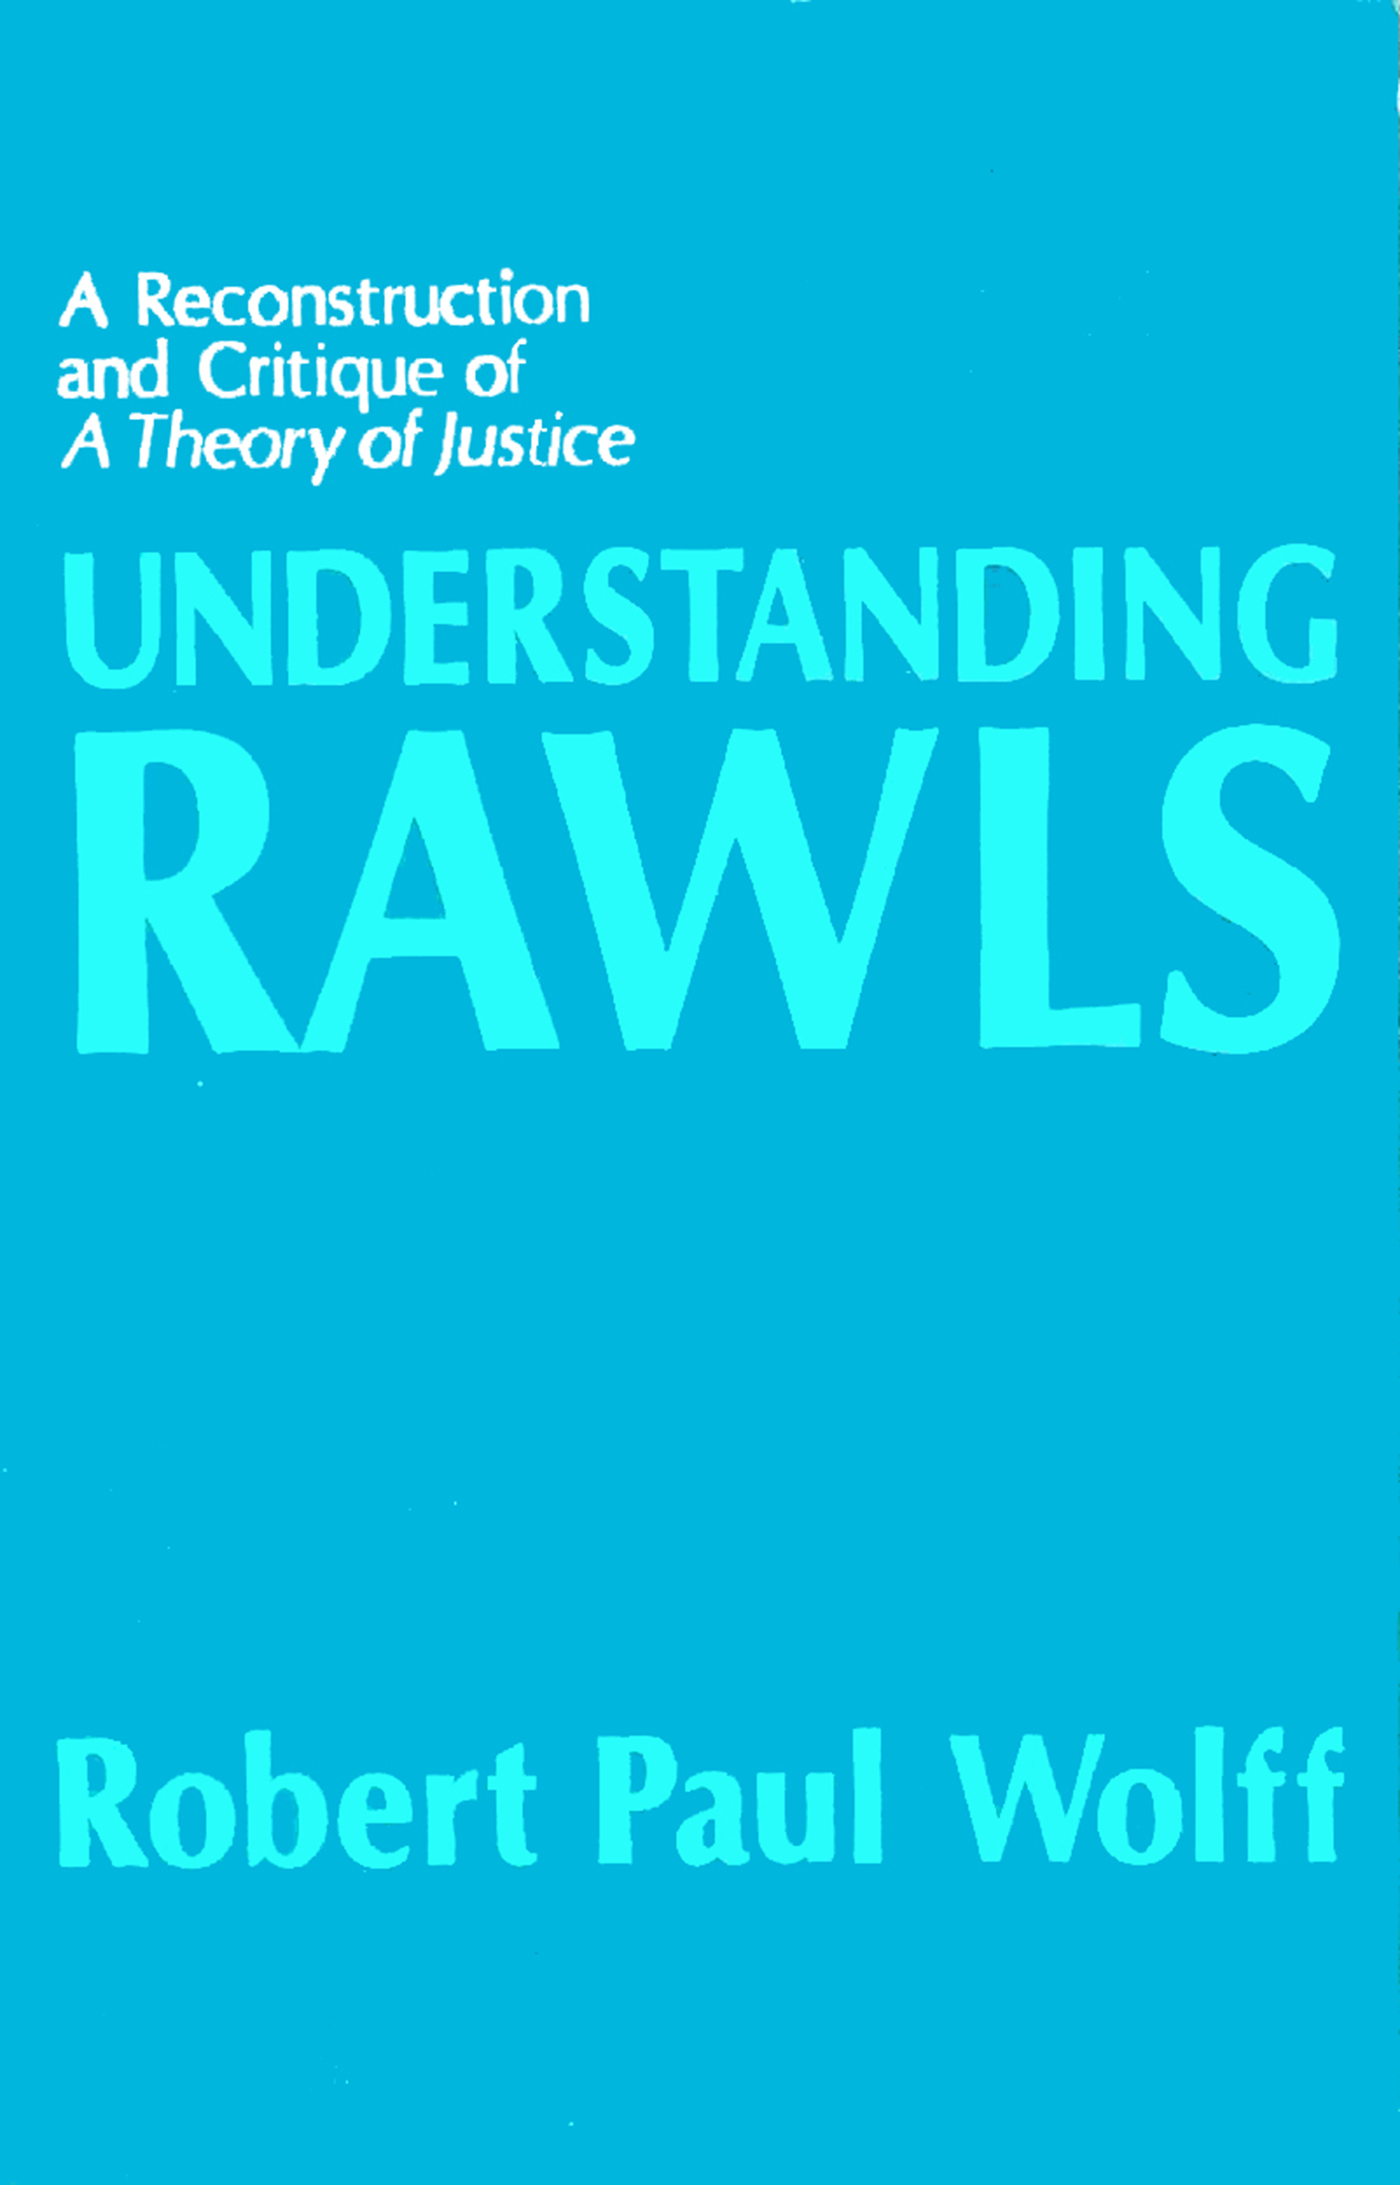 rawls poverty Essays - largest database of quality sample essays and research papers on rawls poverty.